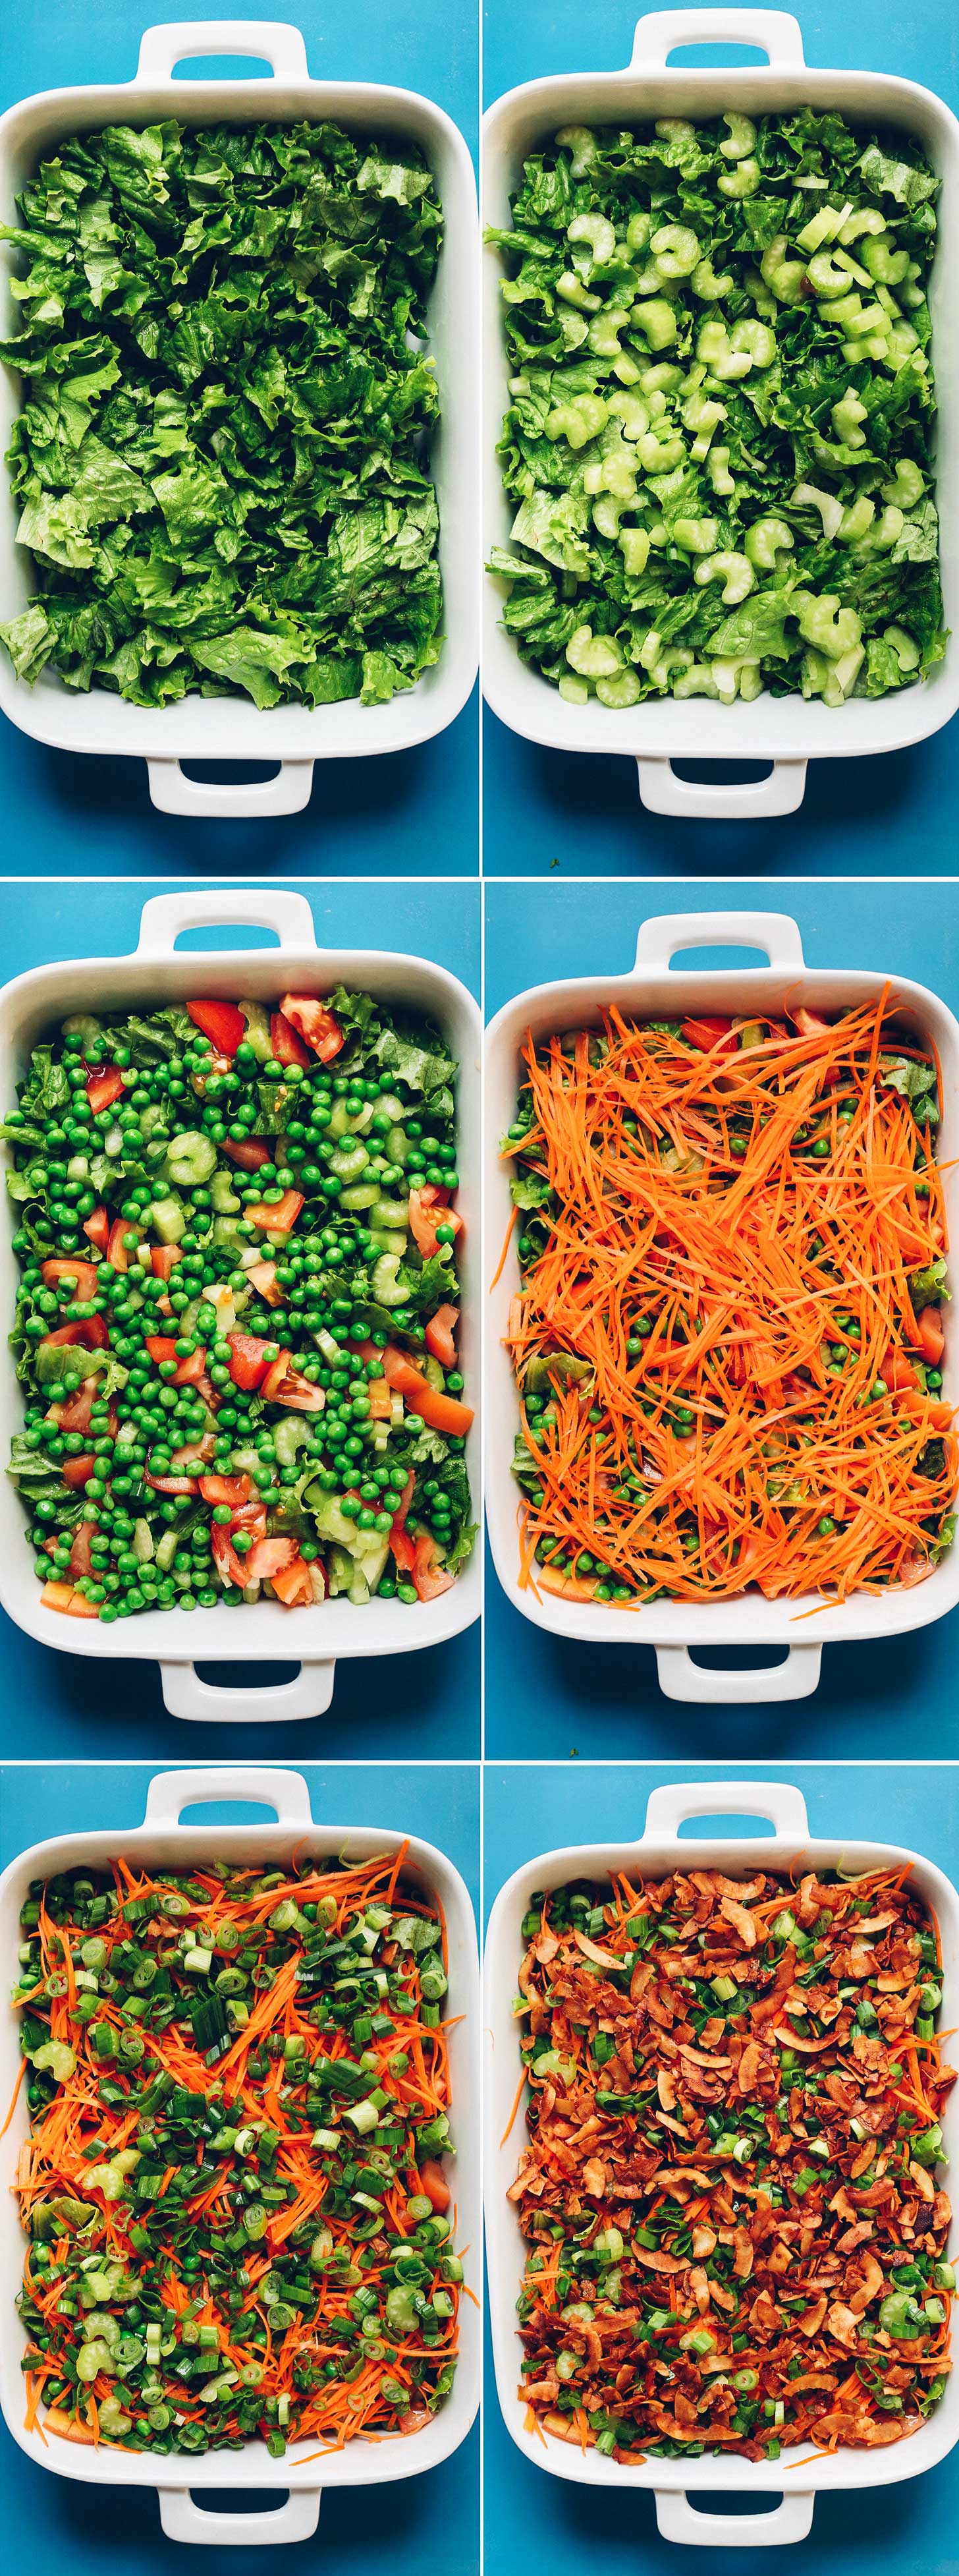 Collection of photos showing each of the layers in our Vegan 7-Layer Salad